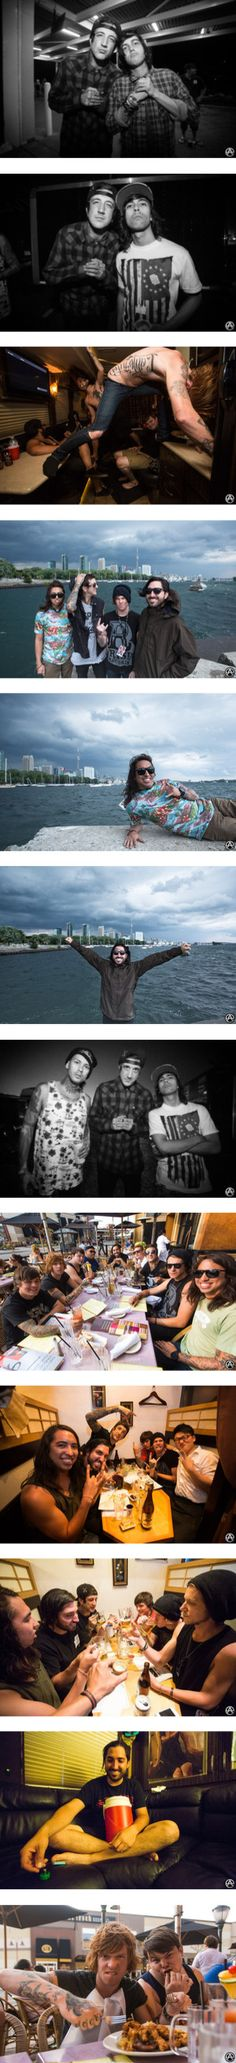 """""""Of Mice & Men!"""" by morticia13 ❤ liked on Polyvore"""